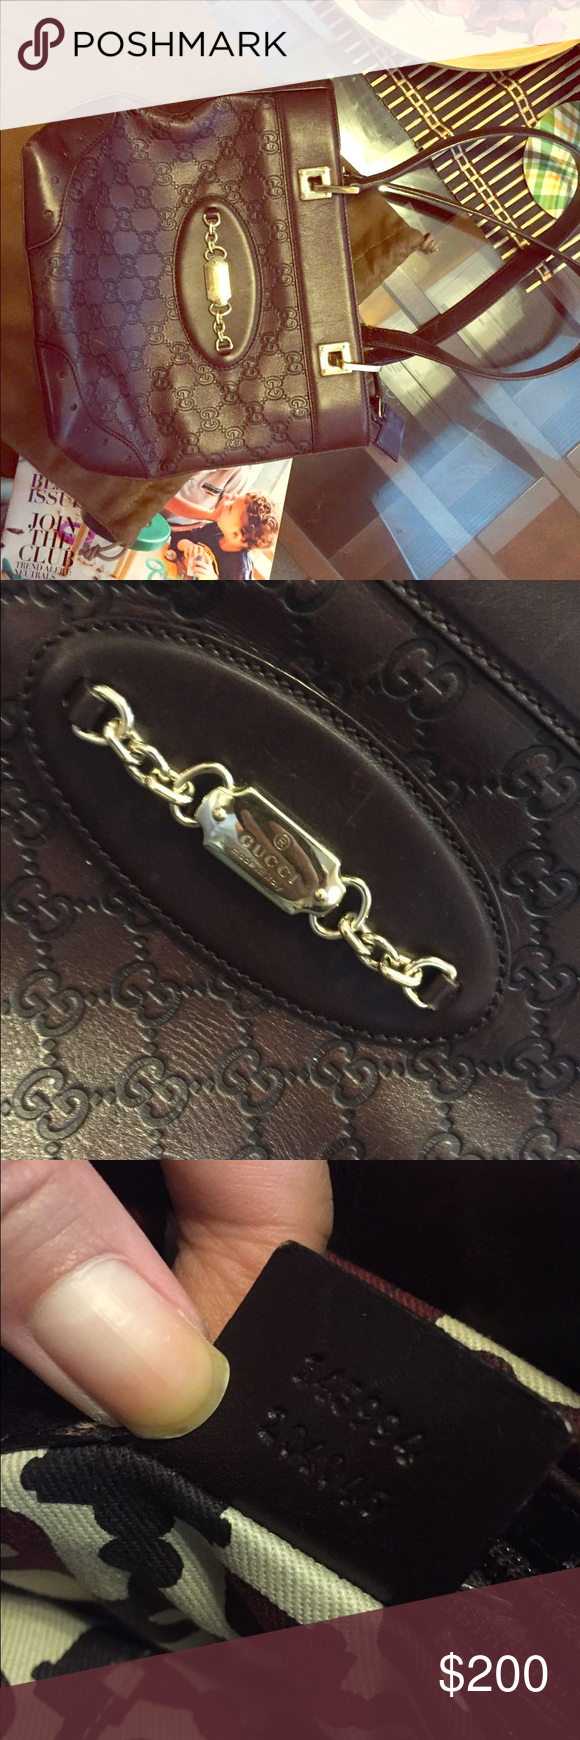 Authentic Gucci handbag It's like 90% new, has code, but no receipt no card. I receive as a gift Gucci Bags Totes